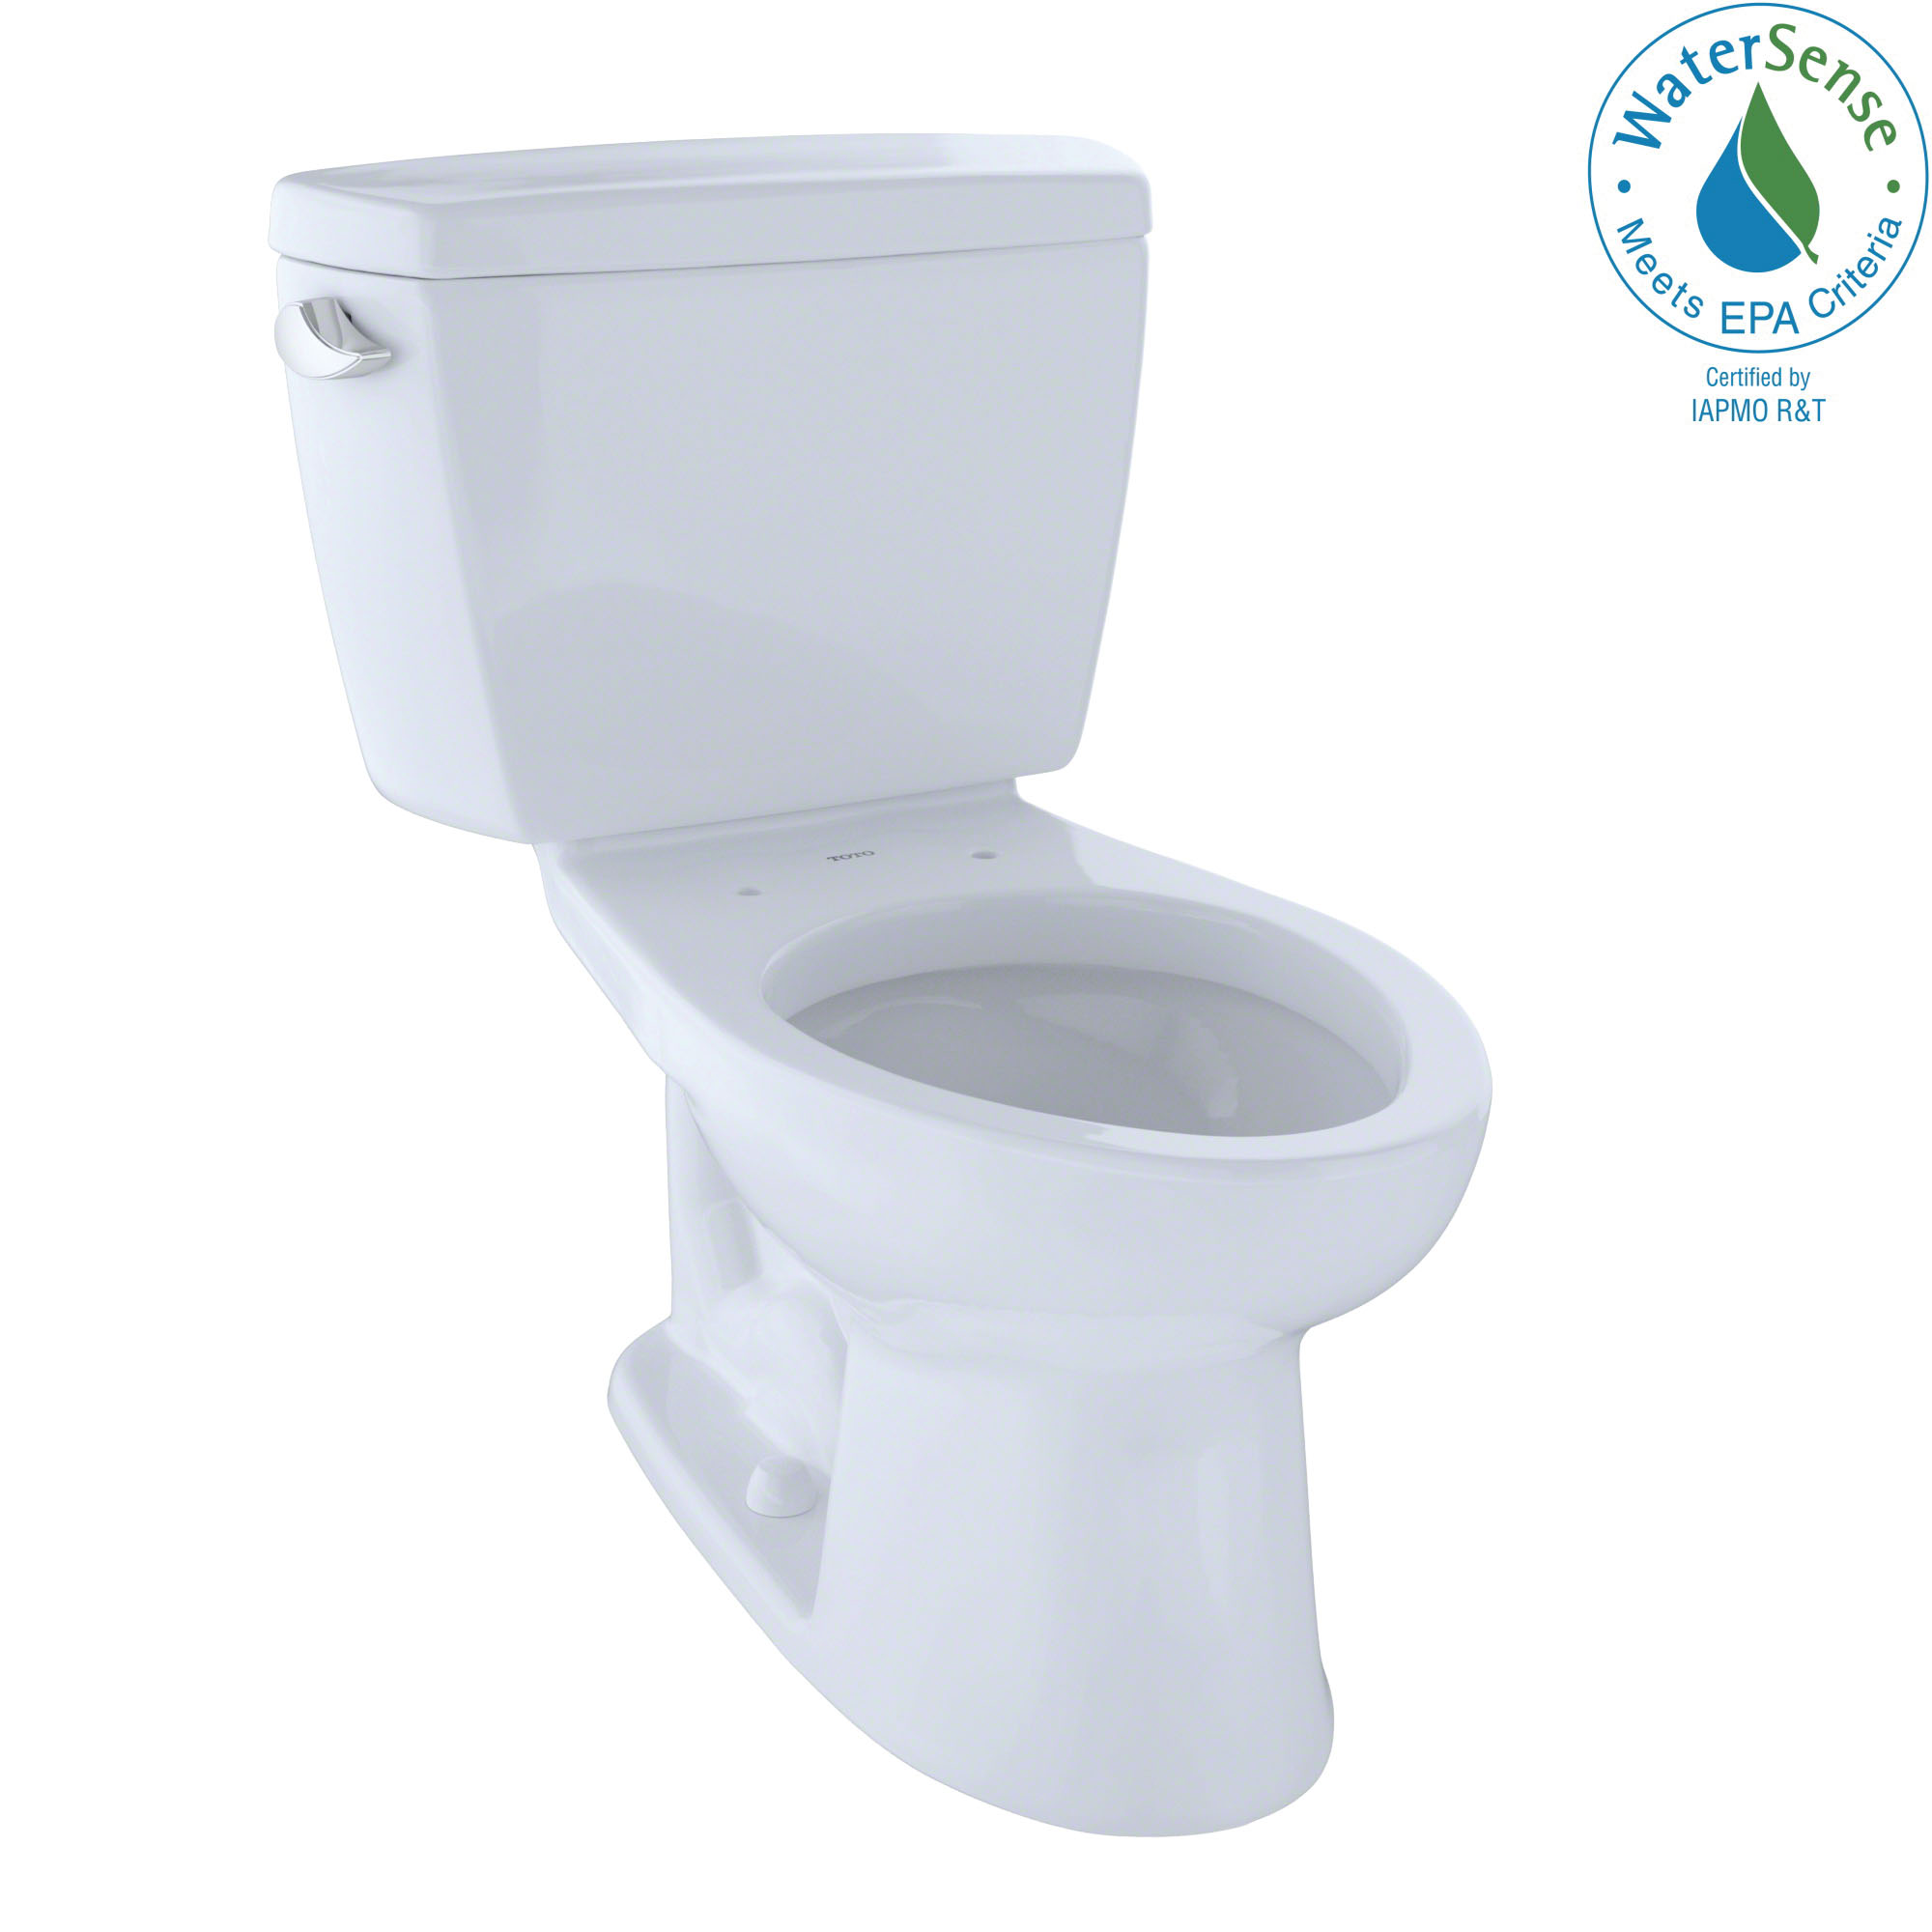 Toto® Eco Drake® CST744EL#01 2-Piece Universal Height Close Coupled Toilet With Left-Hand Chrome Trip Lever, Elongated Front Bowl, 17-5/8 in H Rim, 12 in Rough-In, 1.28 gpf, Cotton White, Import